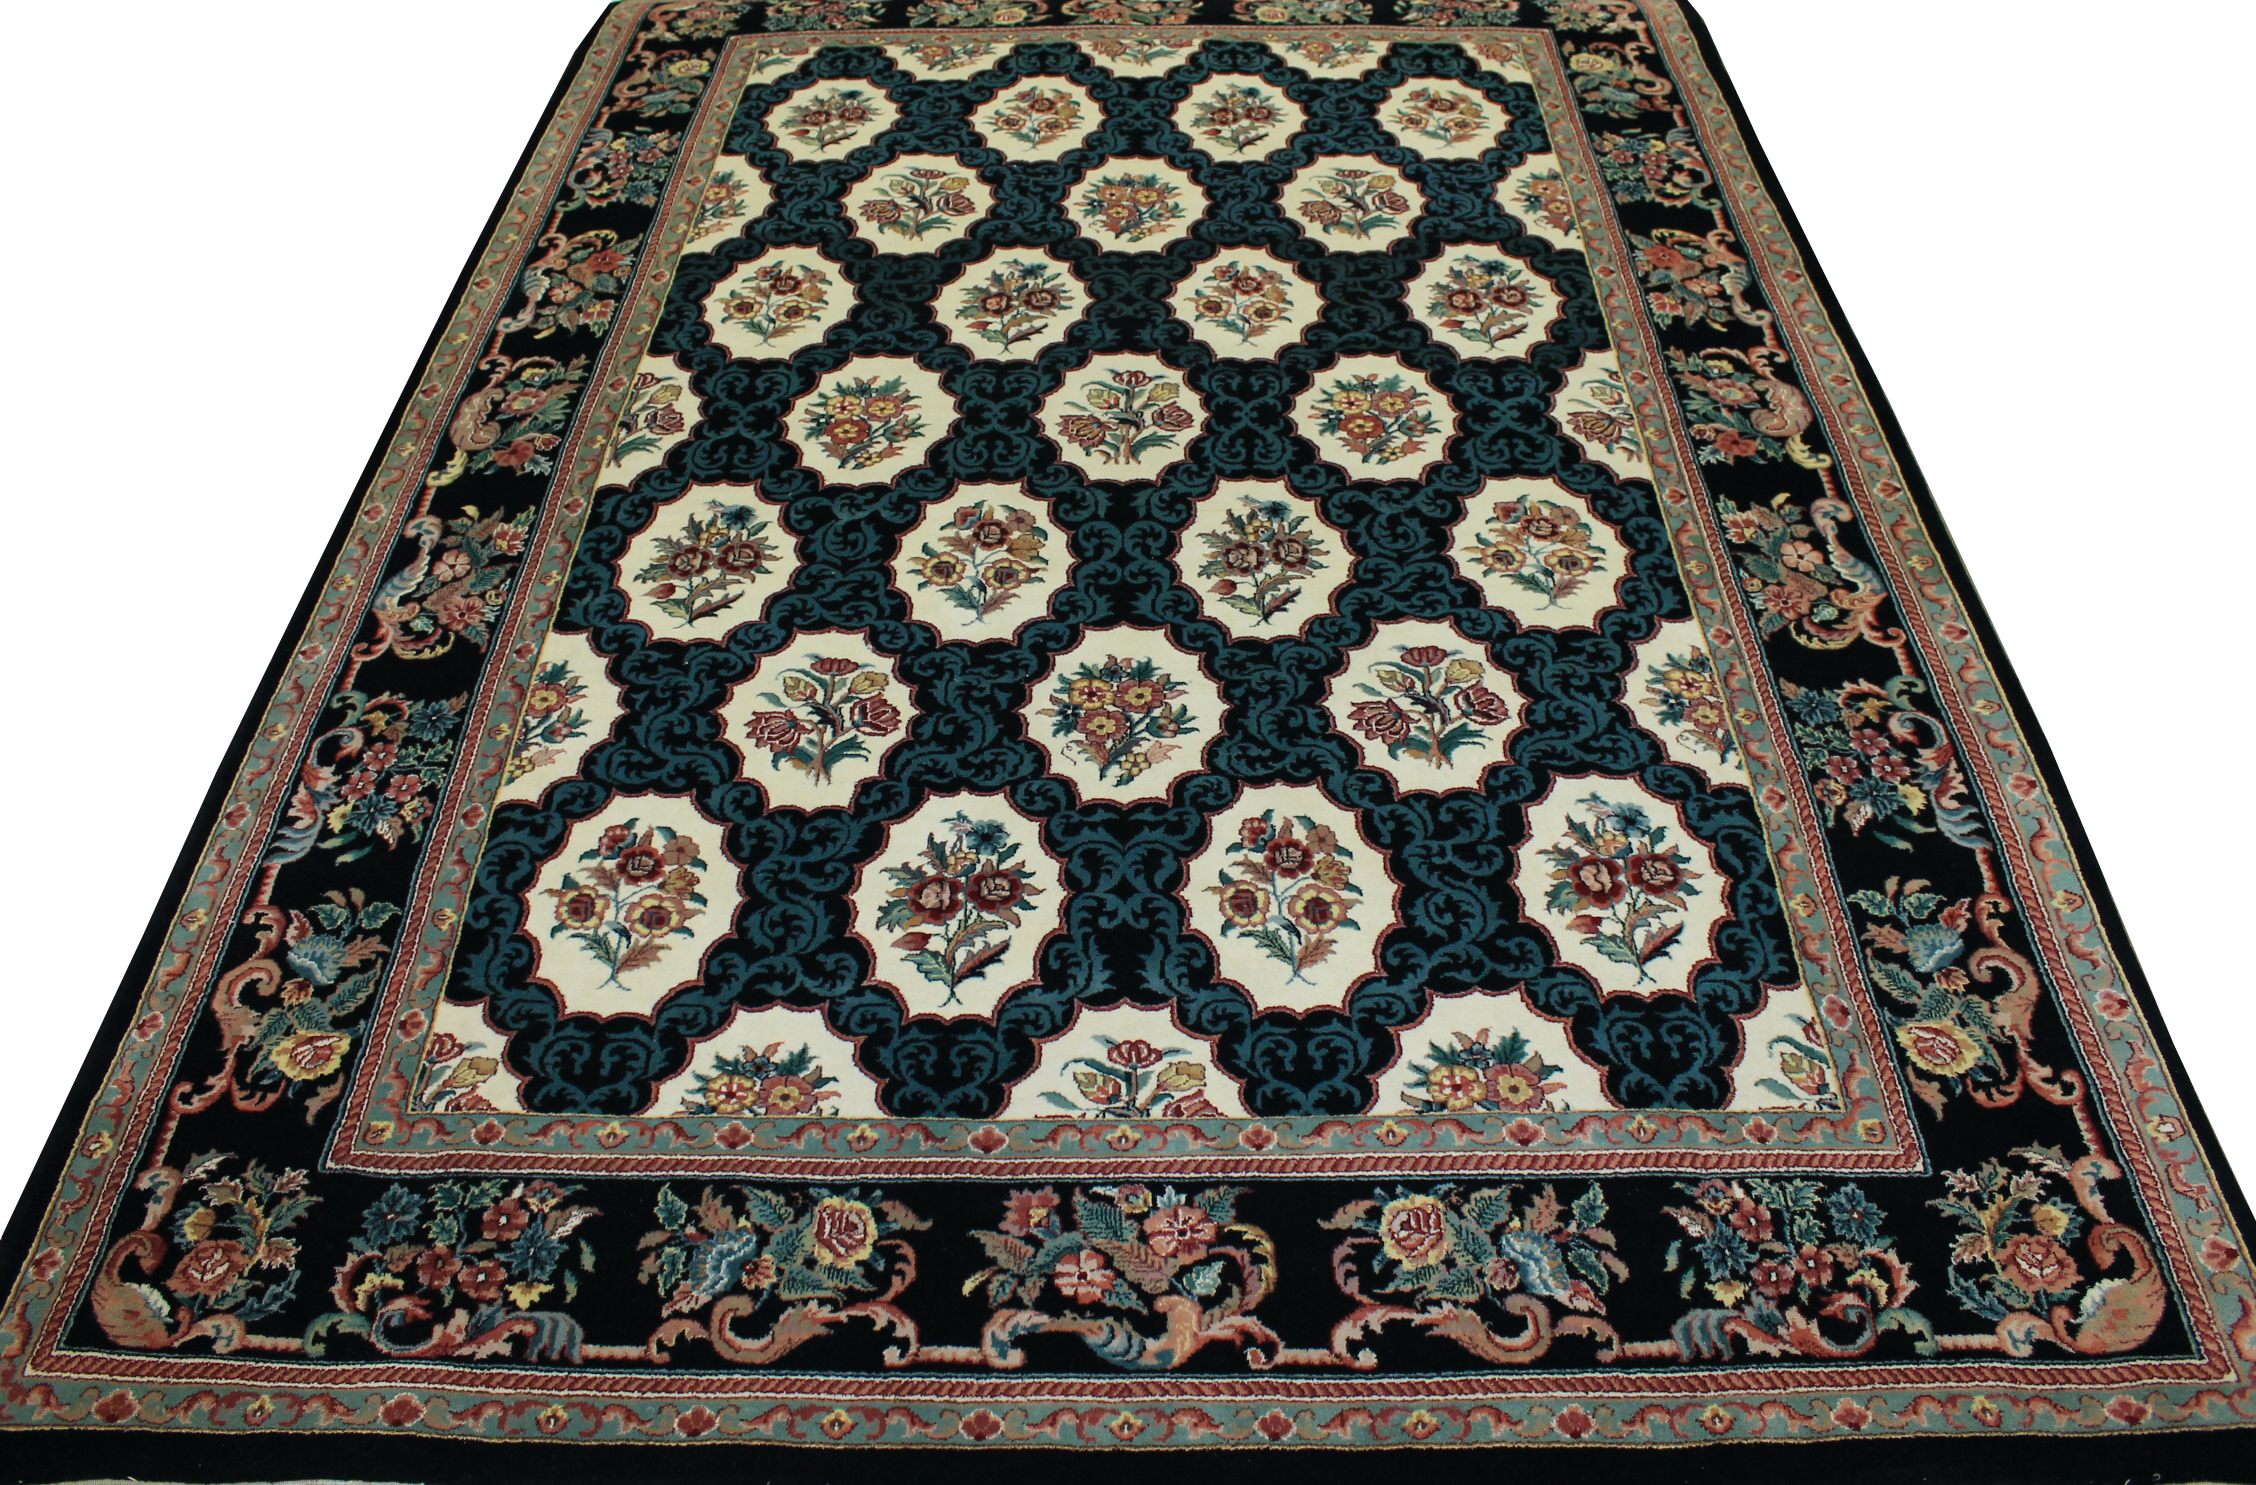 9x12 Traditional Hand Knotted Wool Area Rug - MR0774